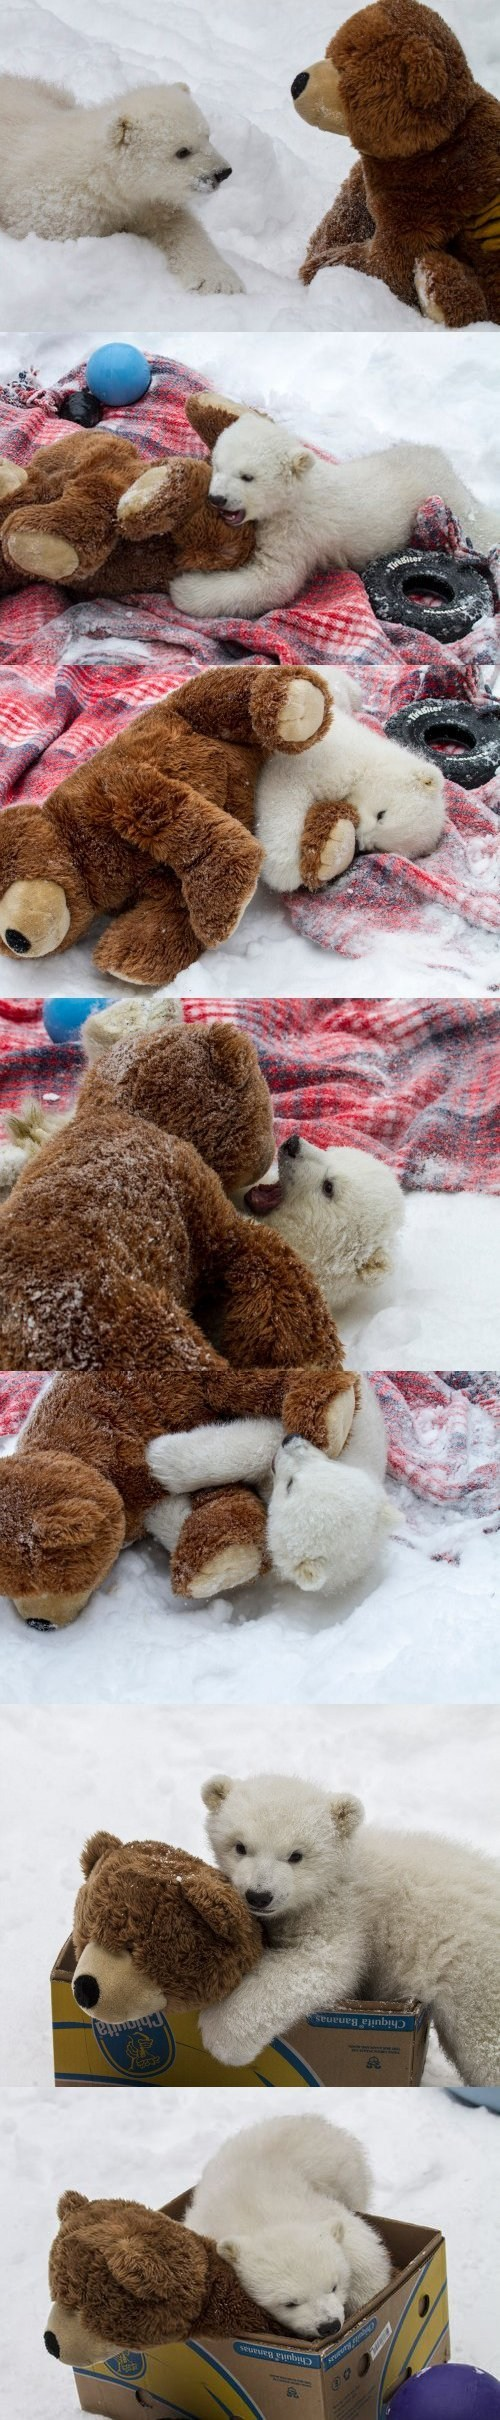 teddy bear polar bear attack - 7267425024